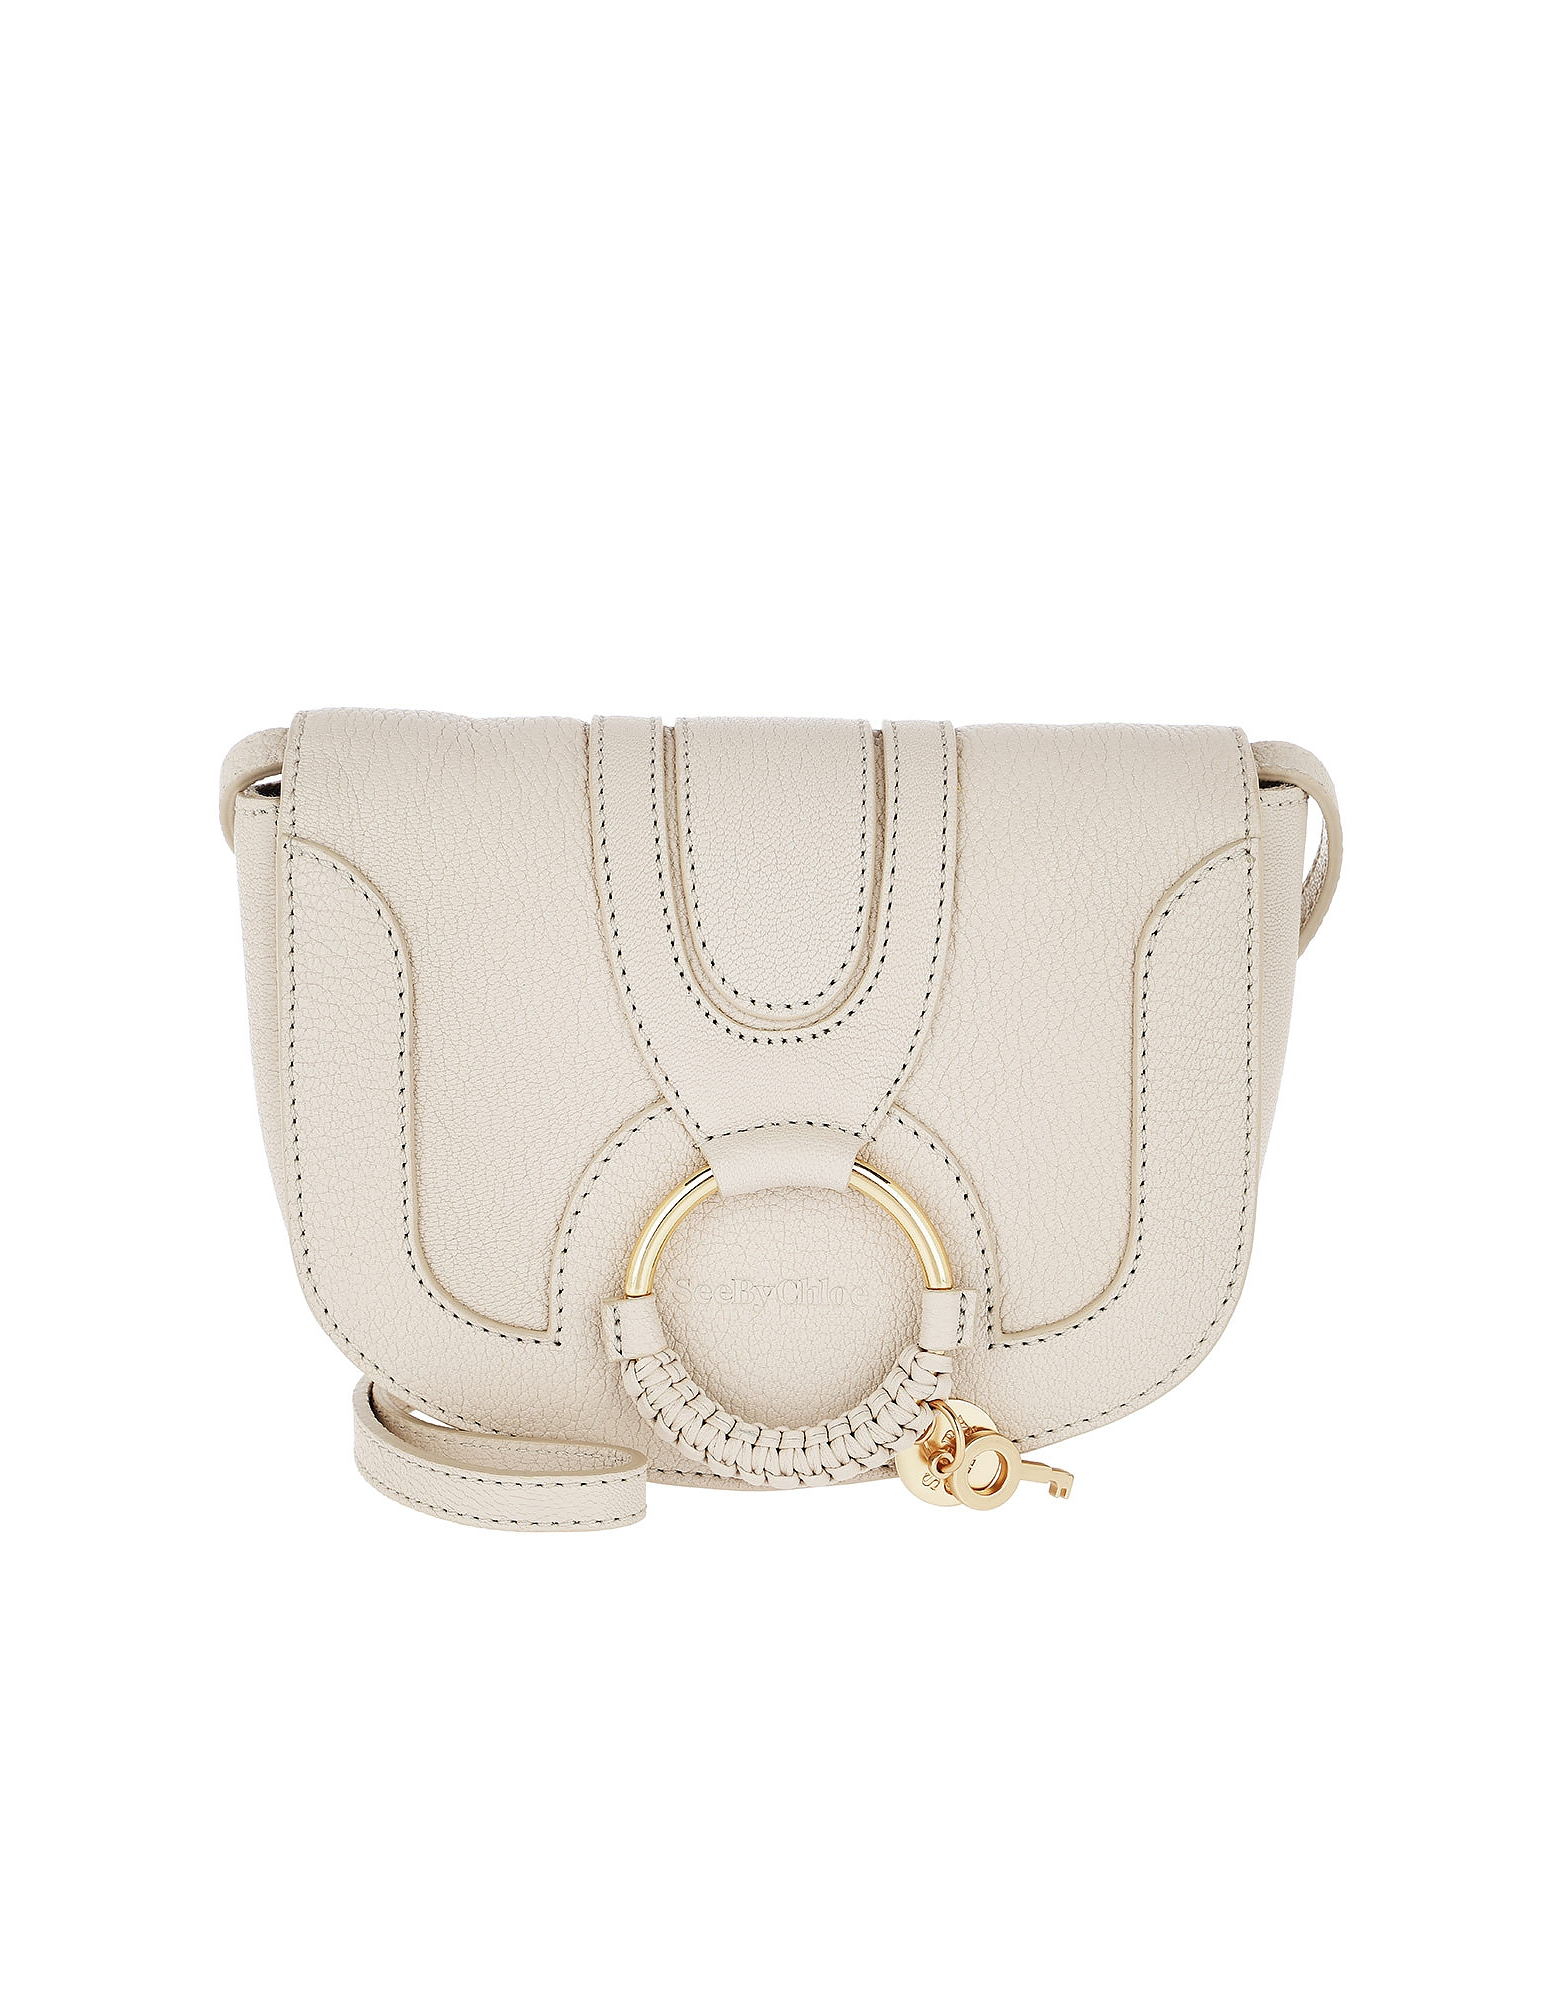 See by Chloé Handbags, Hana Mini Crossbody Bag Cement Beige